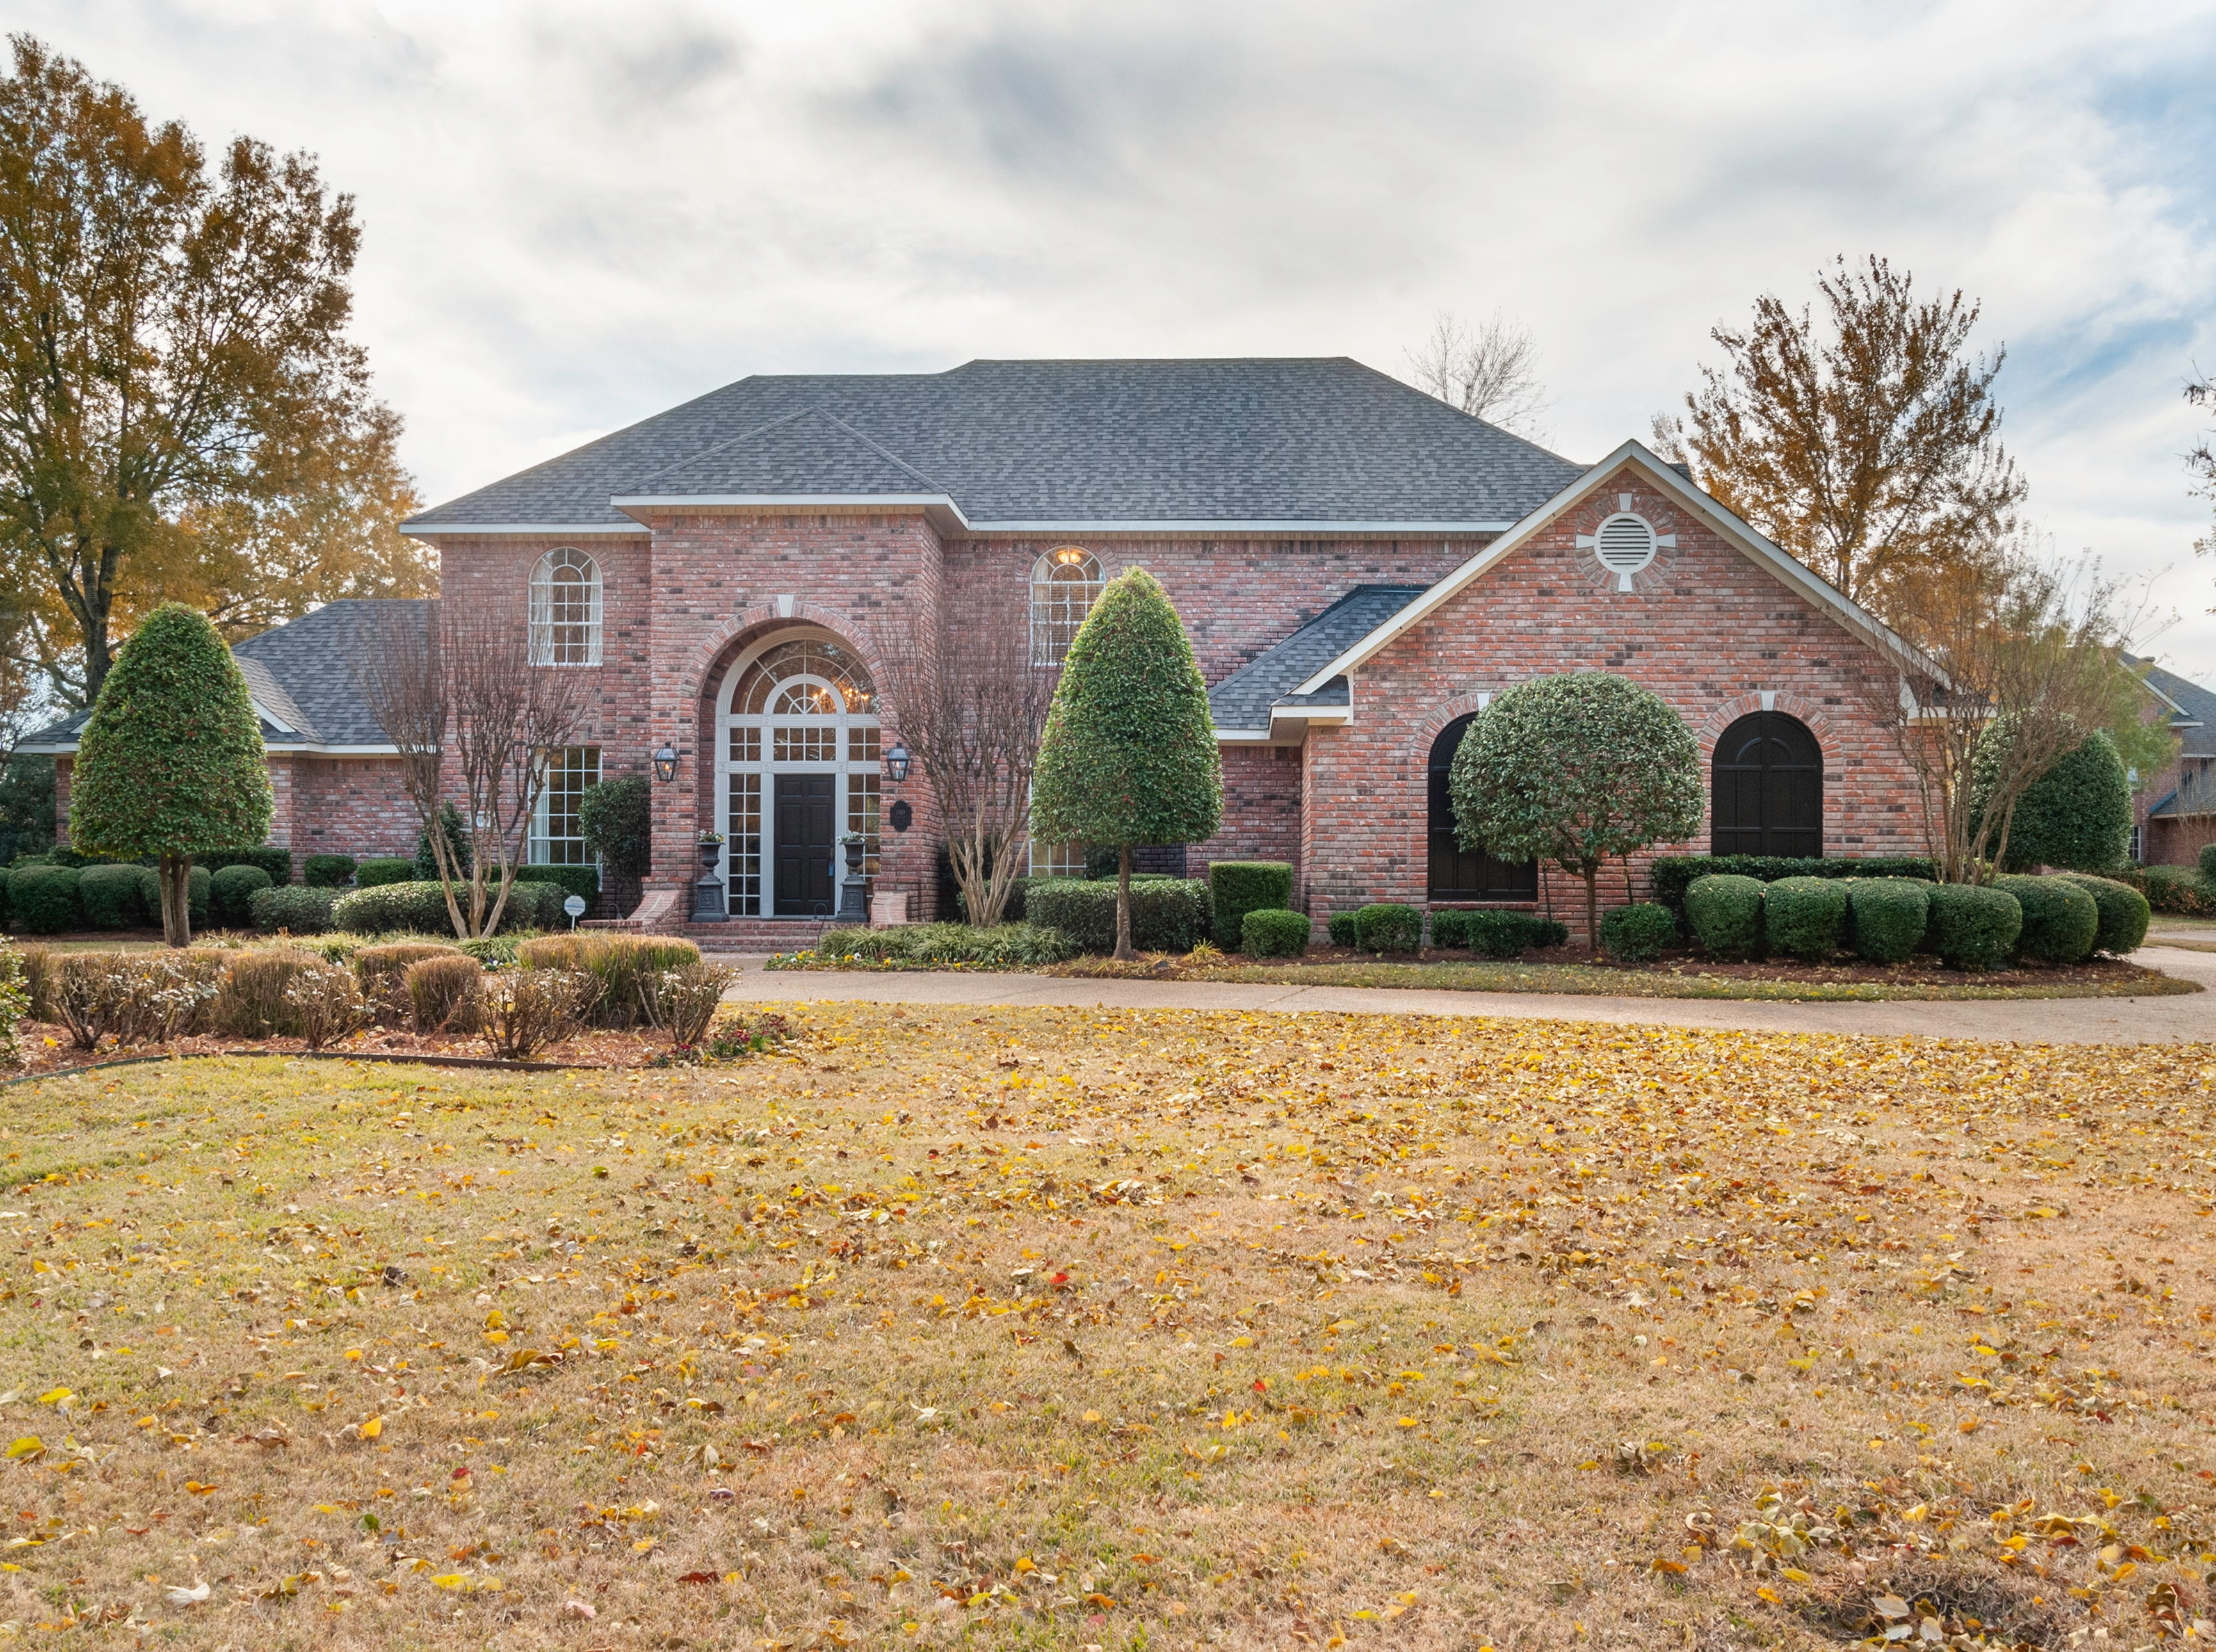 660 Southern Trace   Parkway, Shreveport  Price: $759,900  Details: 5 bedrooms, 5 bathrooms, 4,706 square feet  Special features: Southern Trace home on the golf course, move-in ready, outdoor kitchen.  Contact: Carolyn Mills, 458-2945